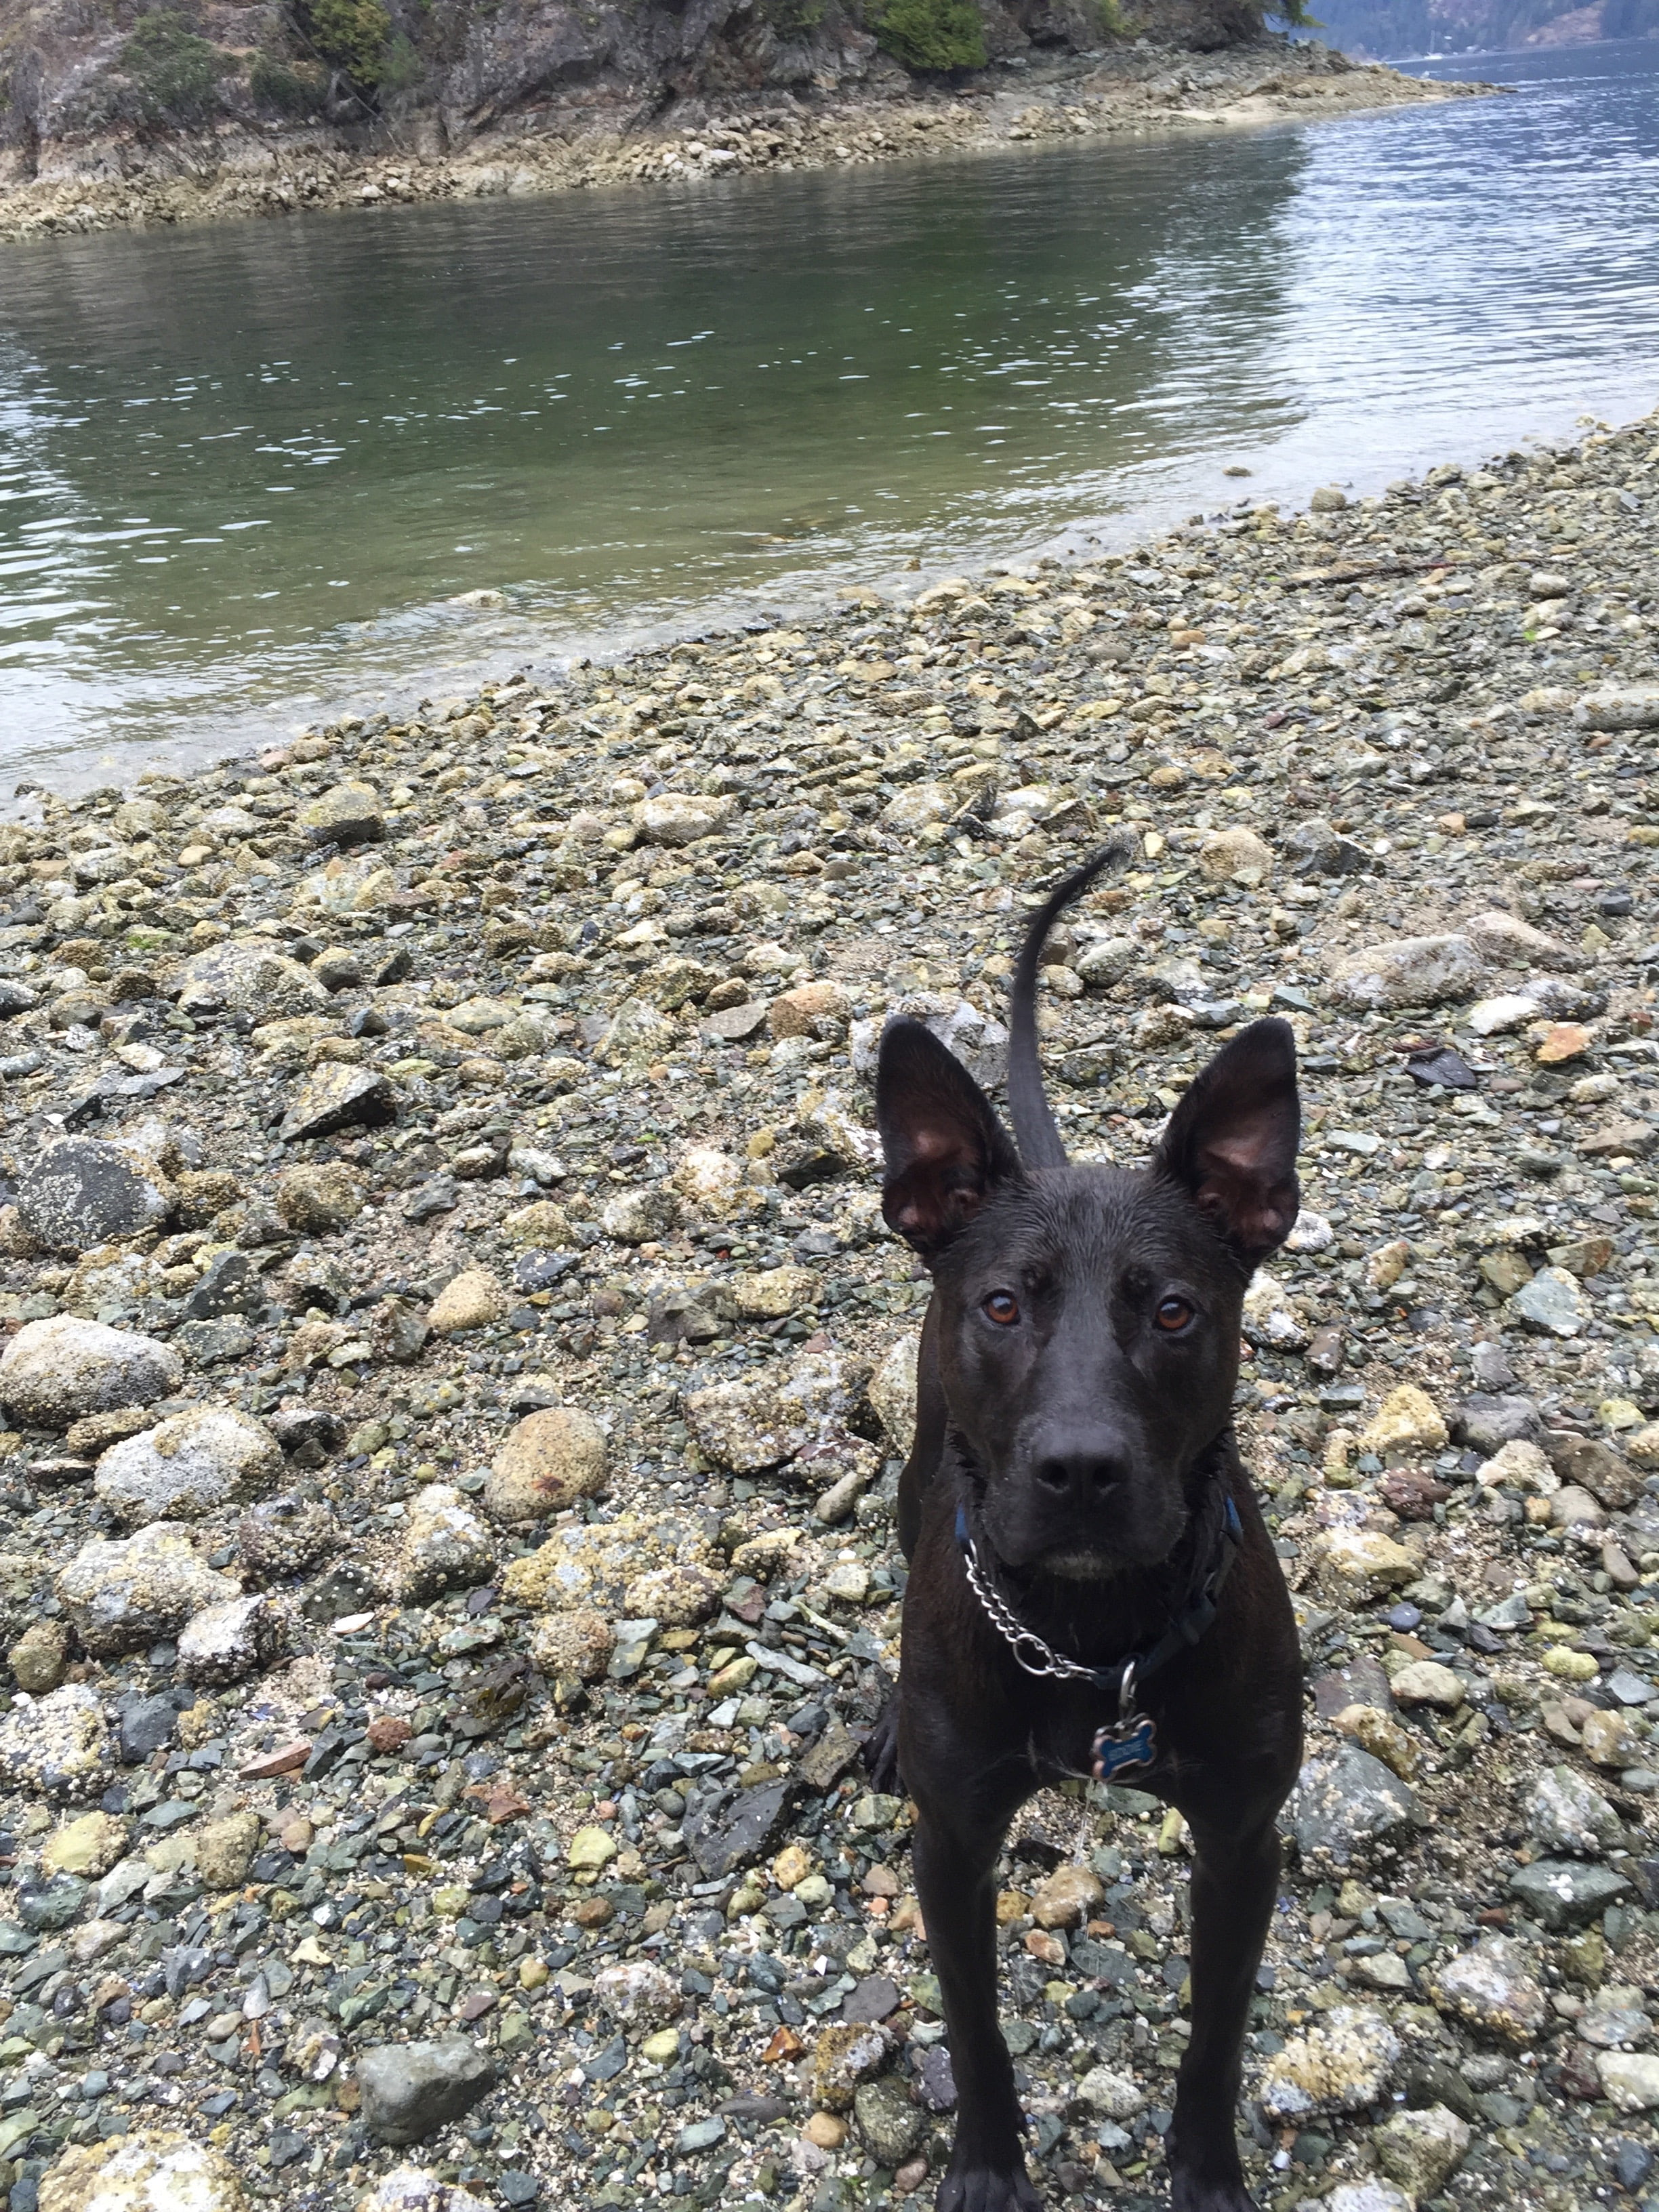 Black Dog Looking at Camera on Rocky Beach